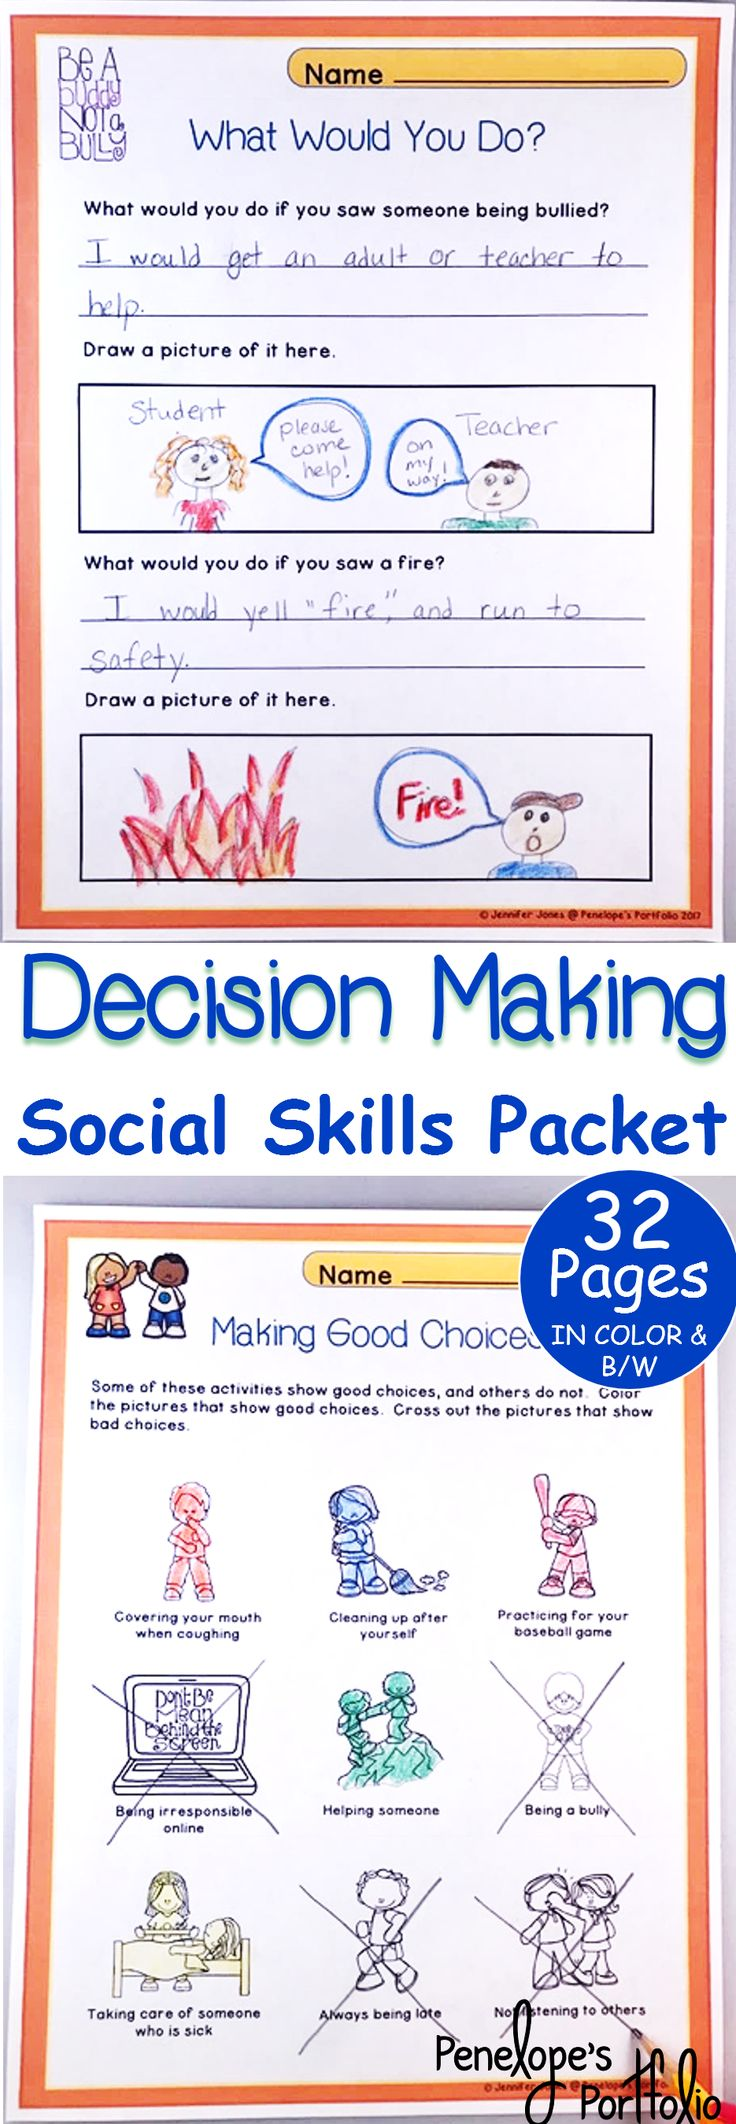 Decision making is a very important life skill. This Character Education - Social Skills Packet is filled with lessons focusing on decision making skills, and is great for classroom management.  Teachers, School Counselors, Social Workers, Special Education Teachers, Speech Therapists, Homeschooling Parents, and other Specialists may benefit from this resource.  https://www.teacherspayteachers.com/Product/Decisiveness-3178827